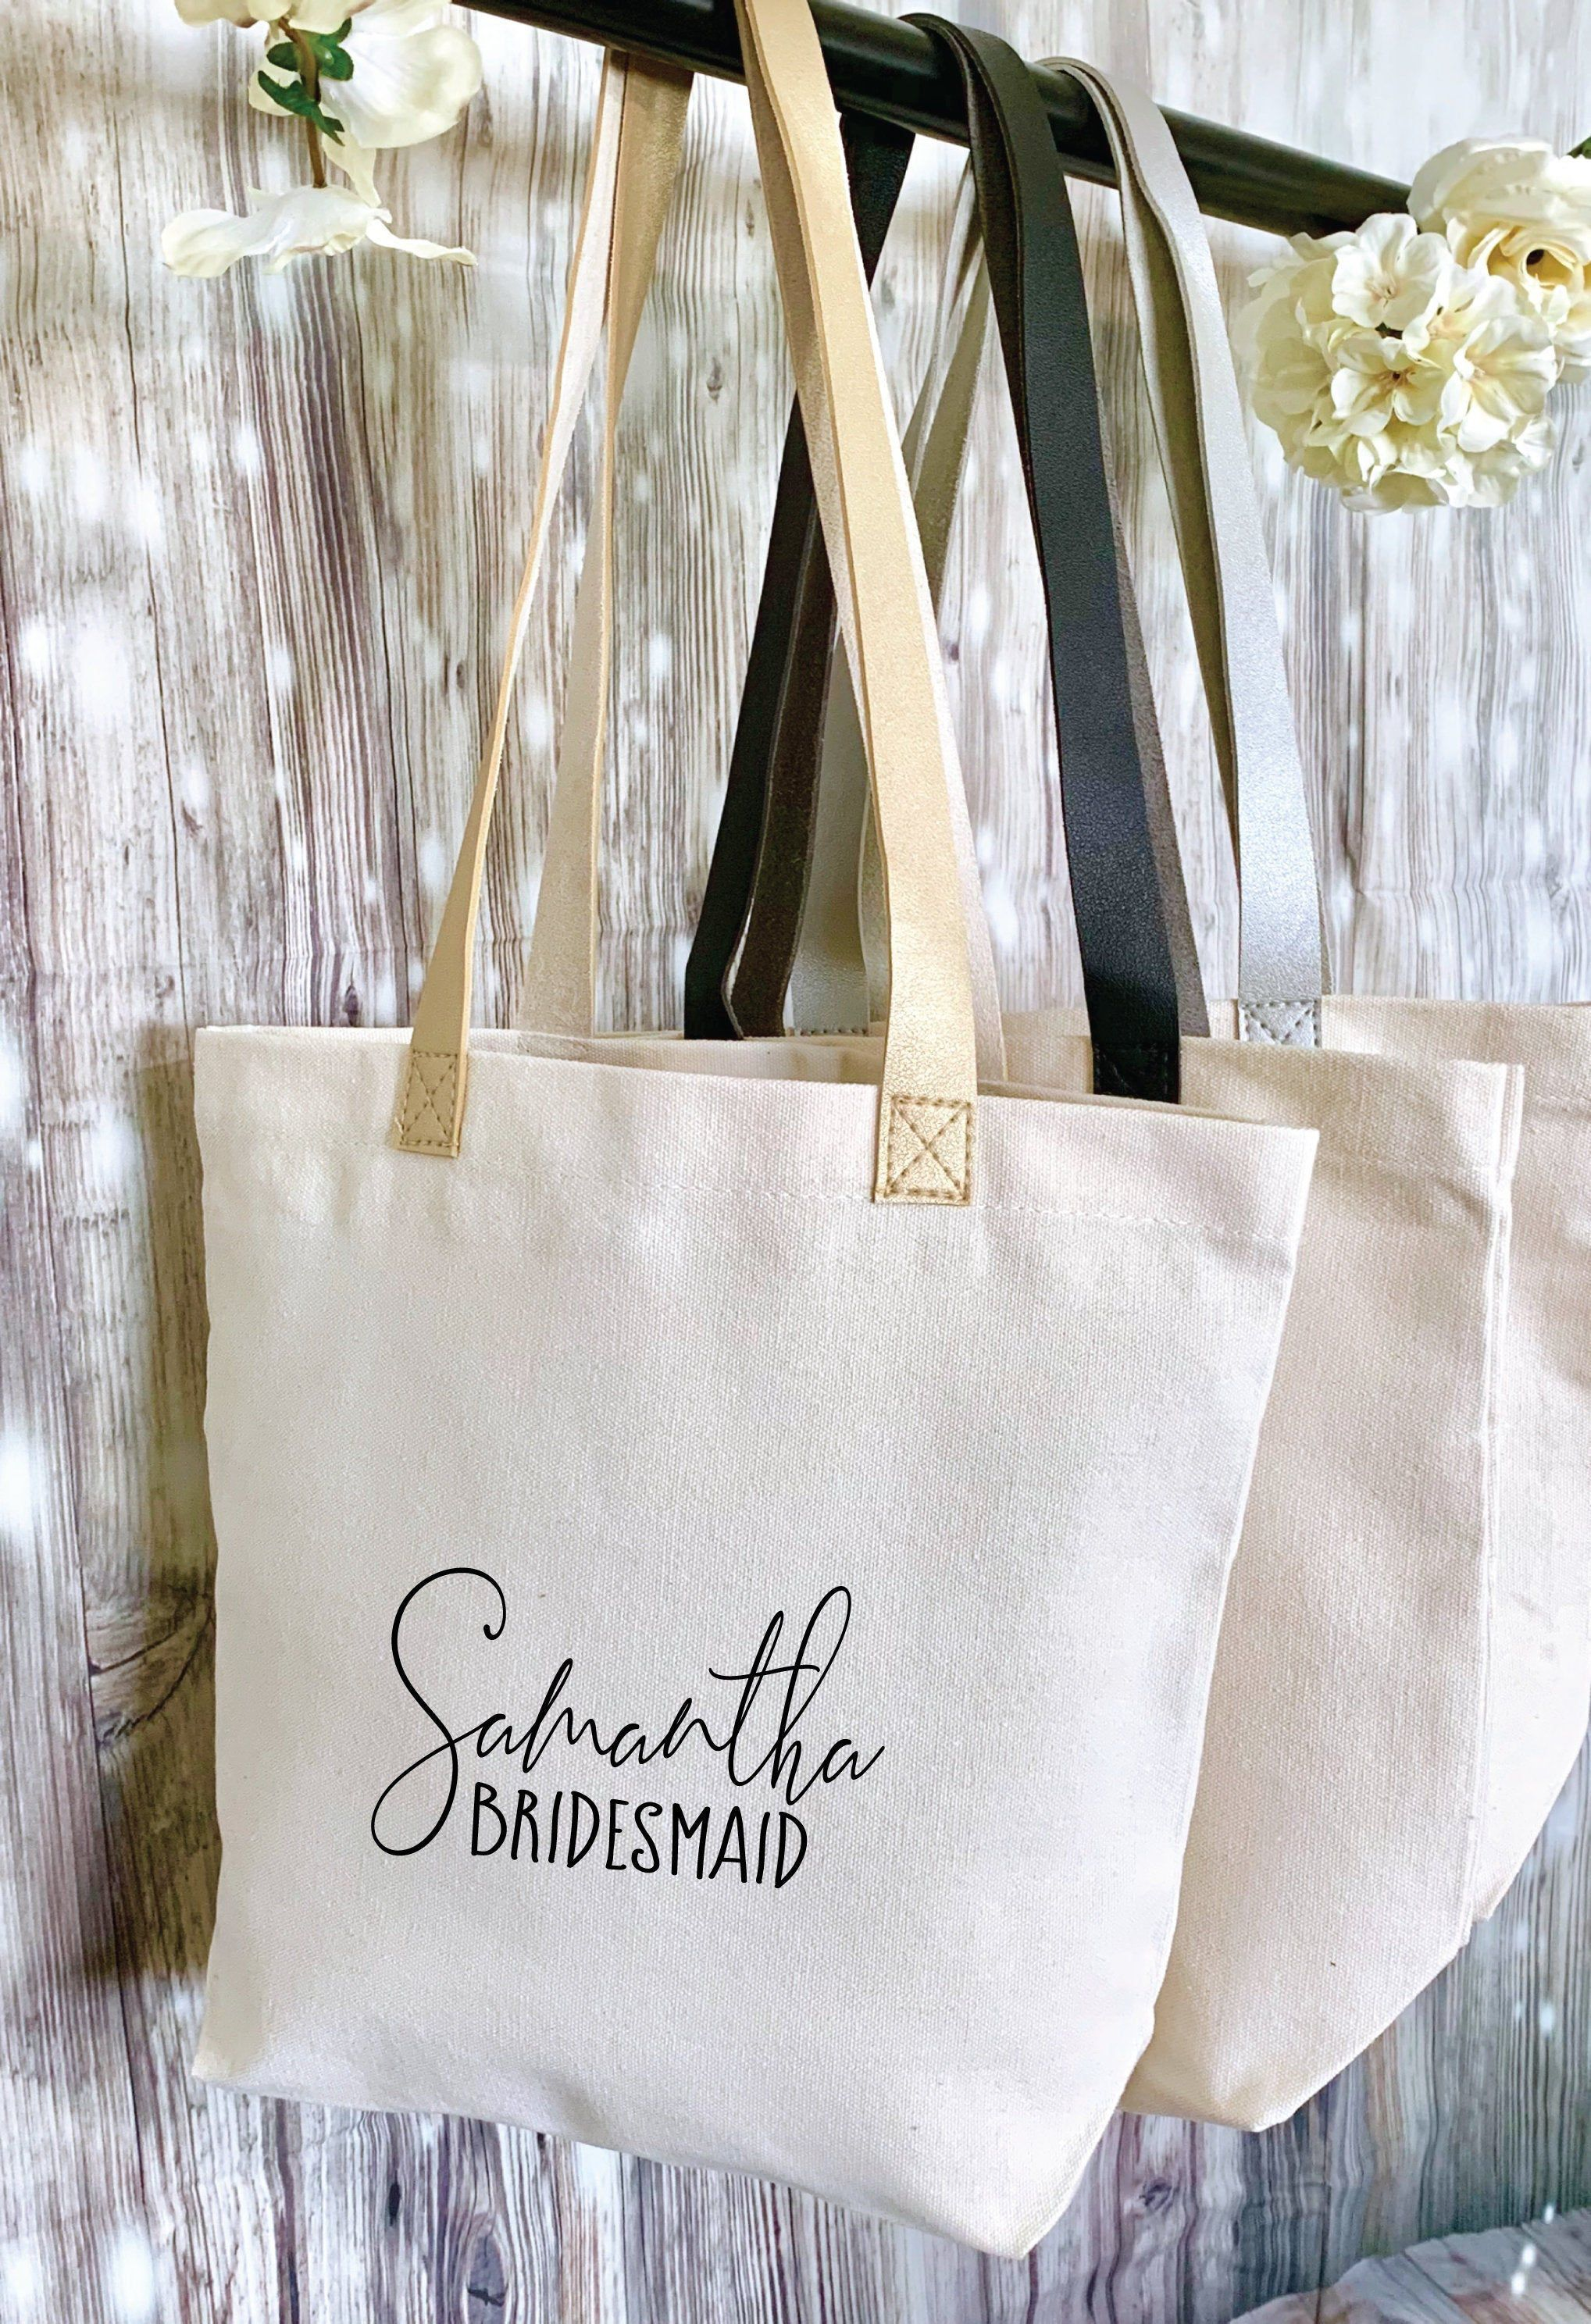 Personalized Tote Bag Personalized Totes Custom Tote Bags Personalized Bridesmaid Tote Bag